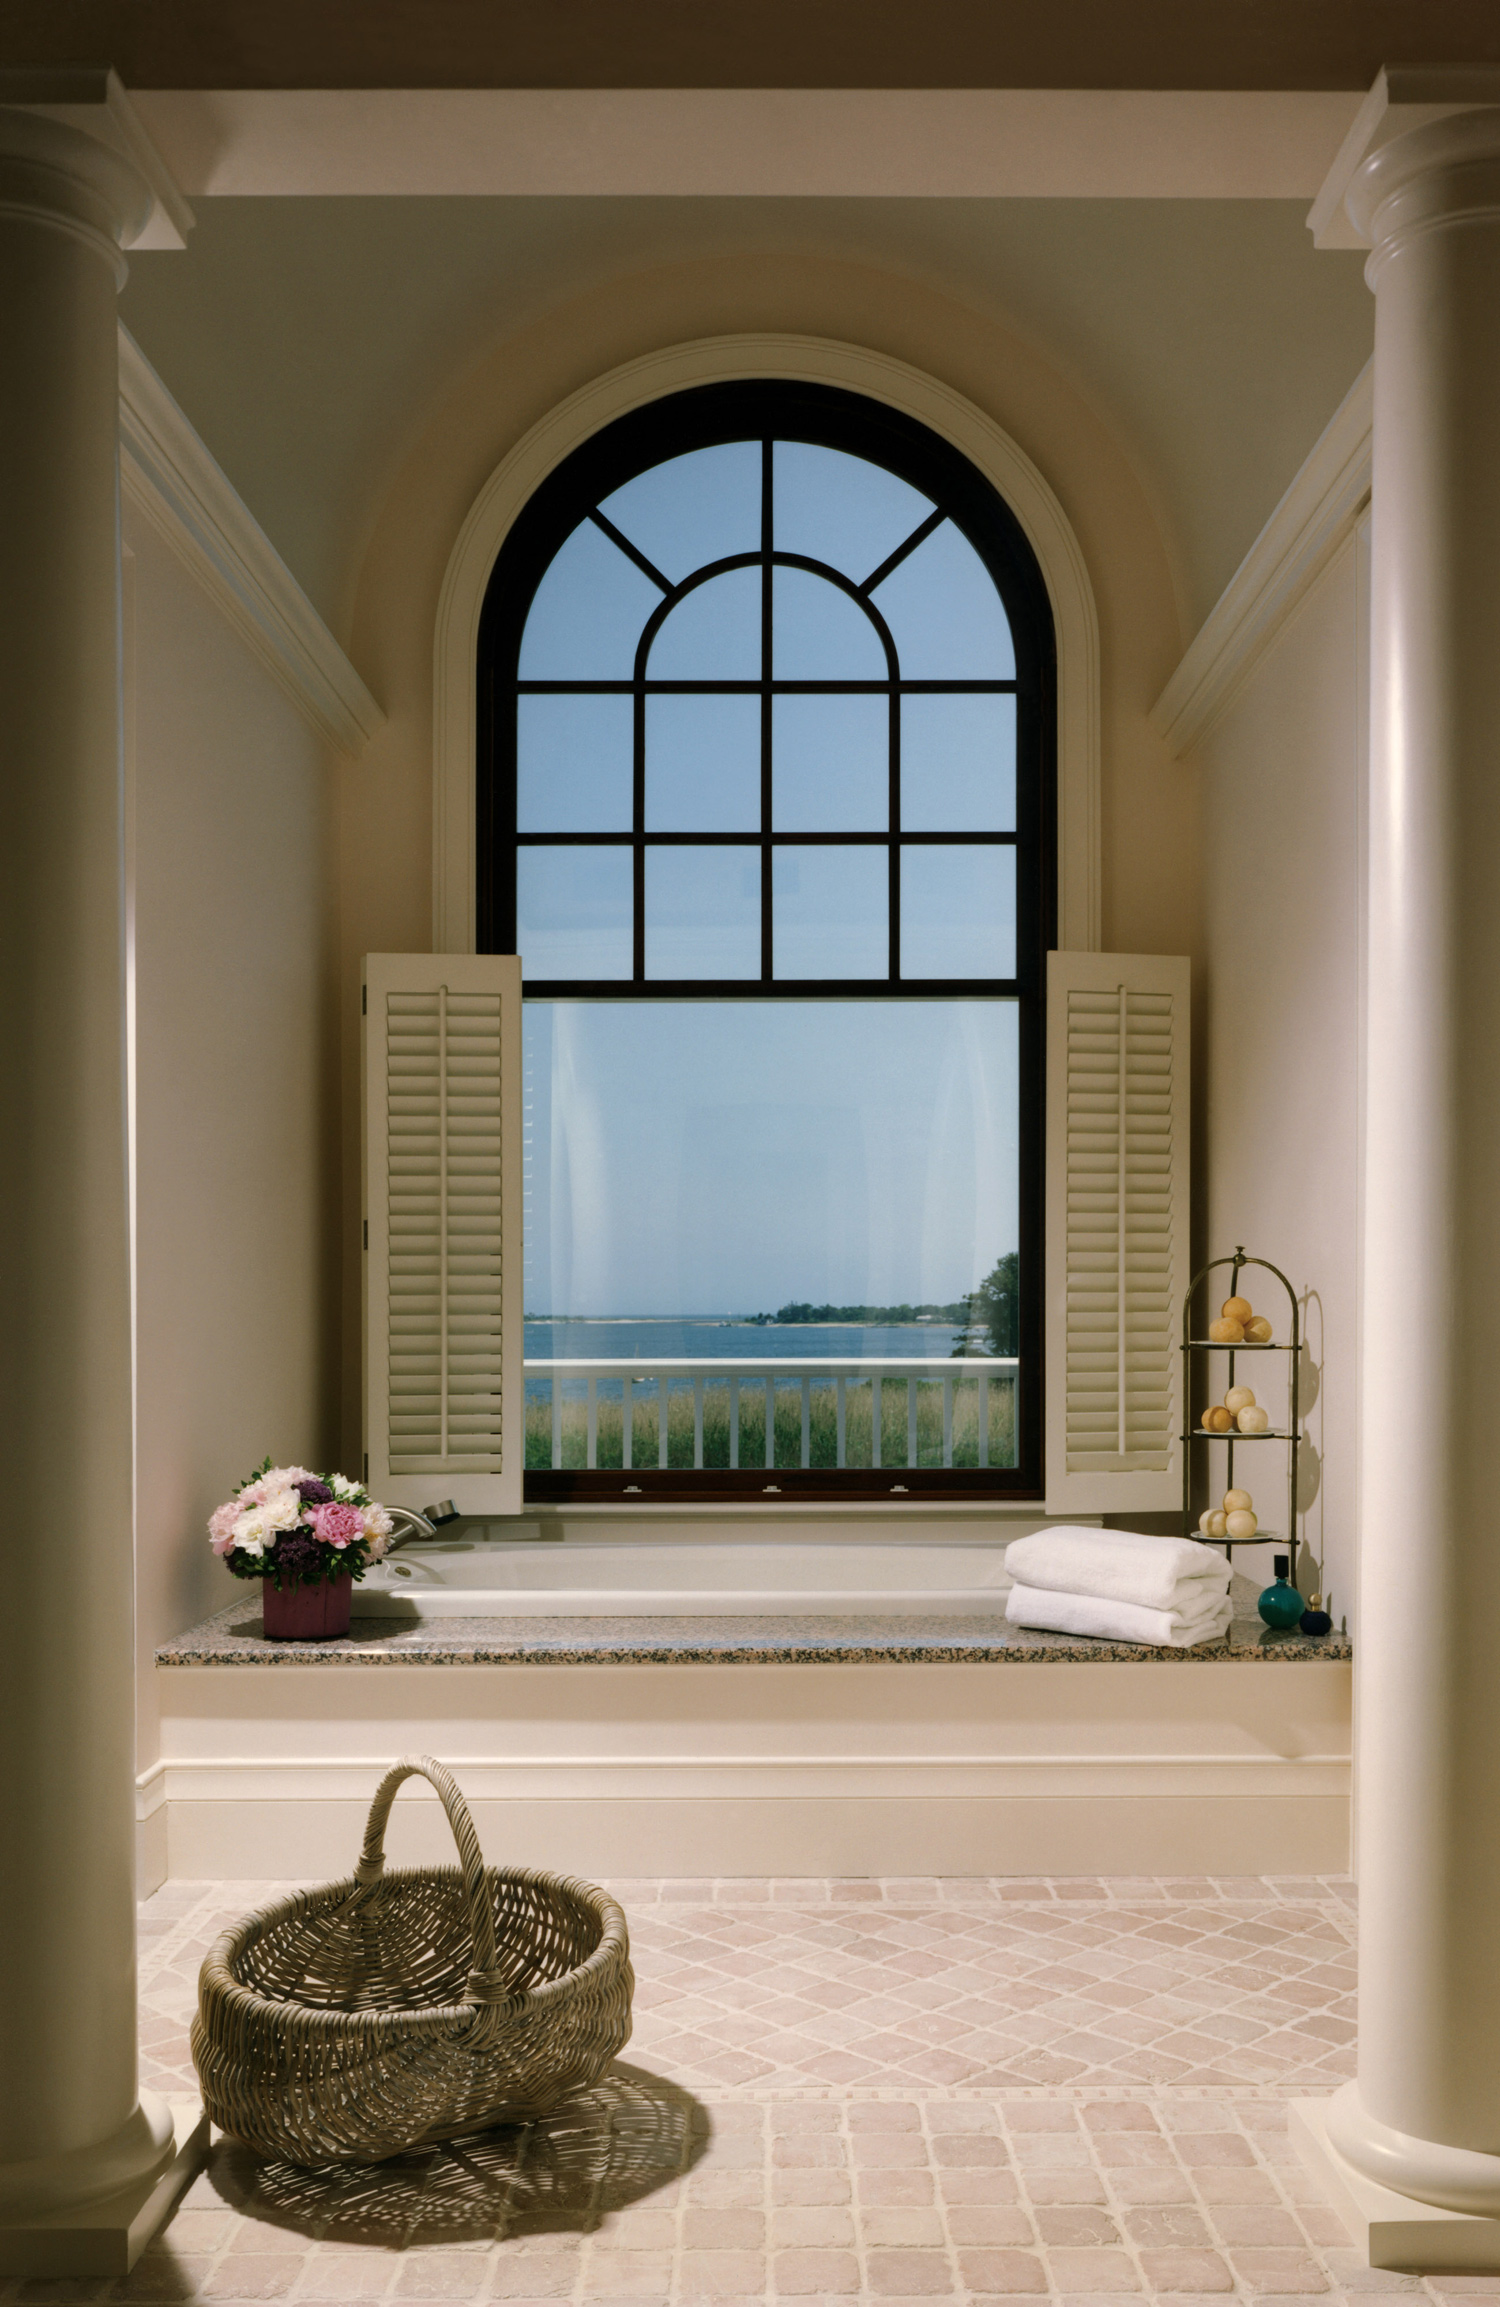 Smith_Cape_Bathtub.jpg